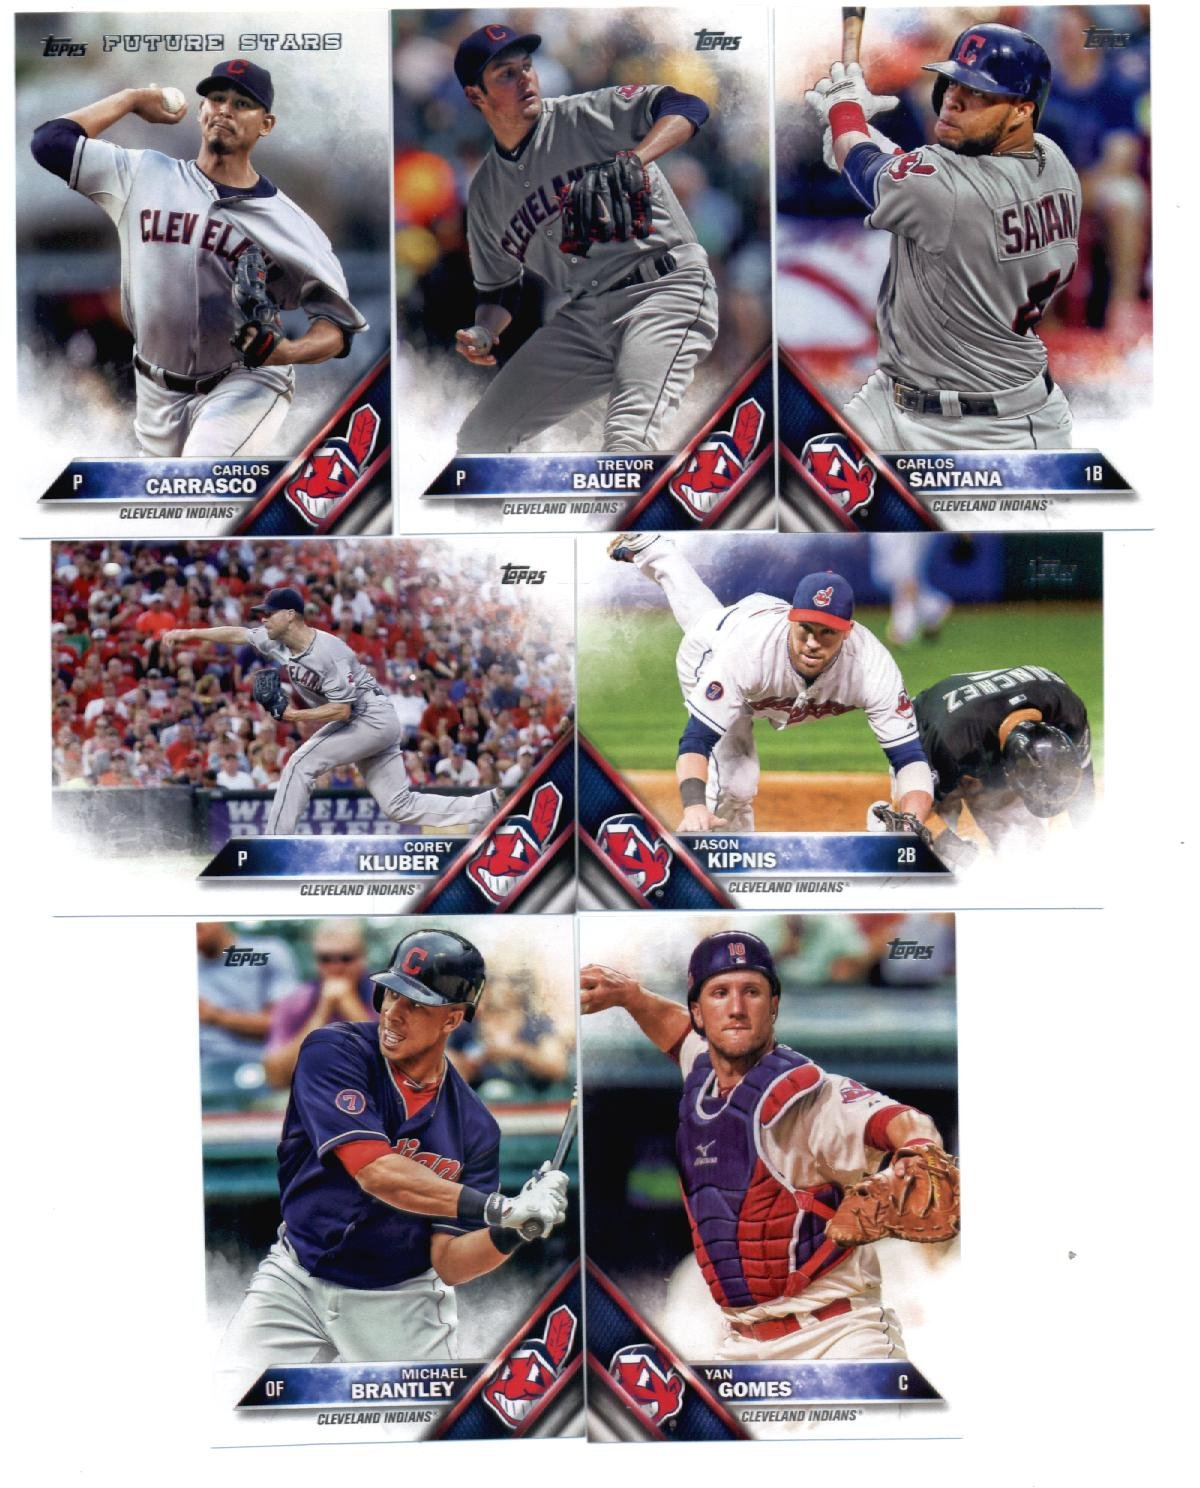 2016 Topps Baseball Cleveland Indians Master Team Set of 31 Cards (Series 1, Series 2, and Update Series)- Includes Kluber, Napoli, Lindor, Kipnis, Naquin plus more!